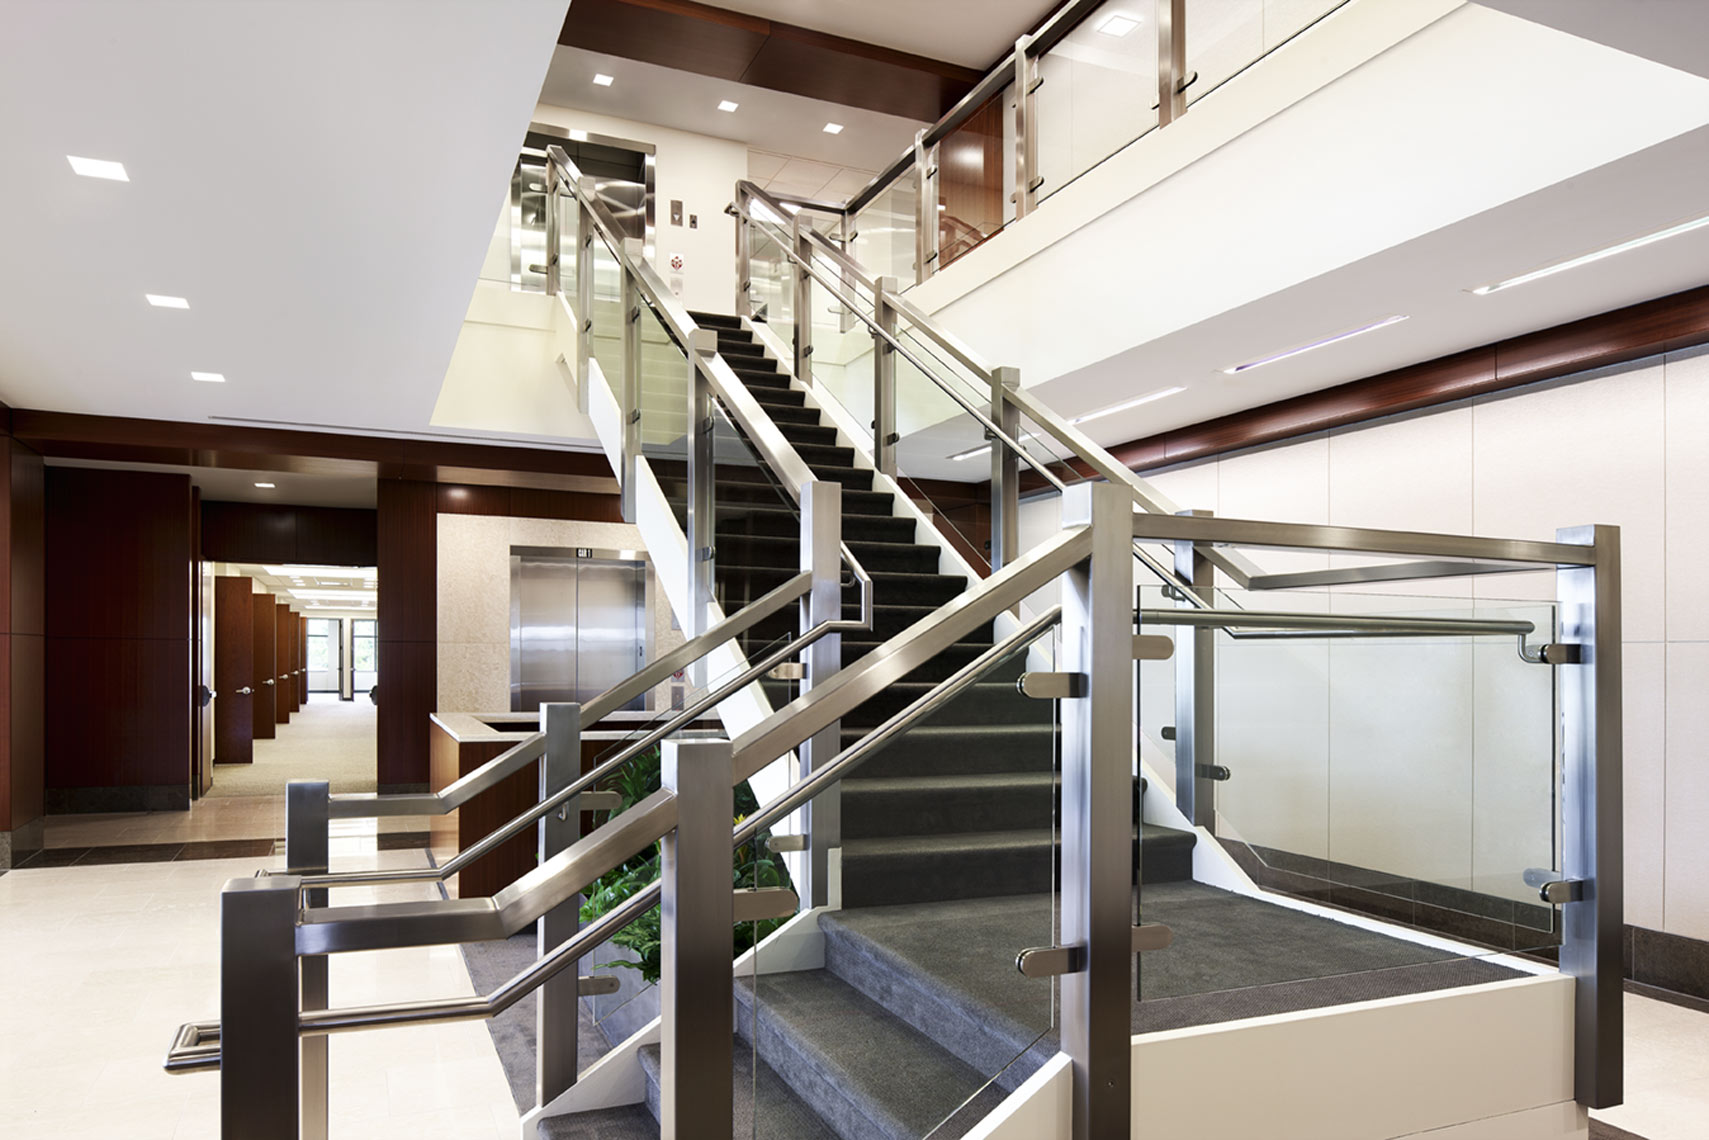 architectural photograph of ab office building interior staircase by Dan Poyourow